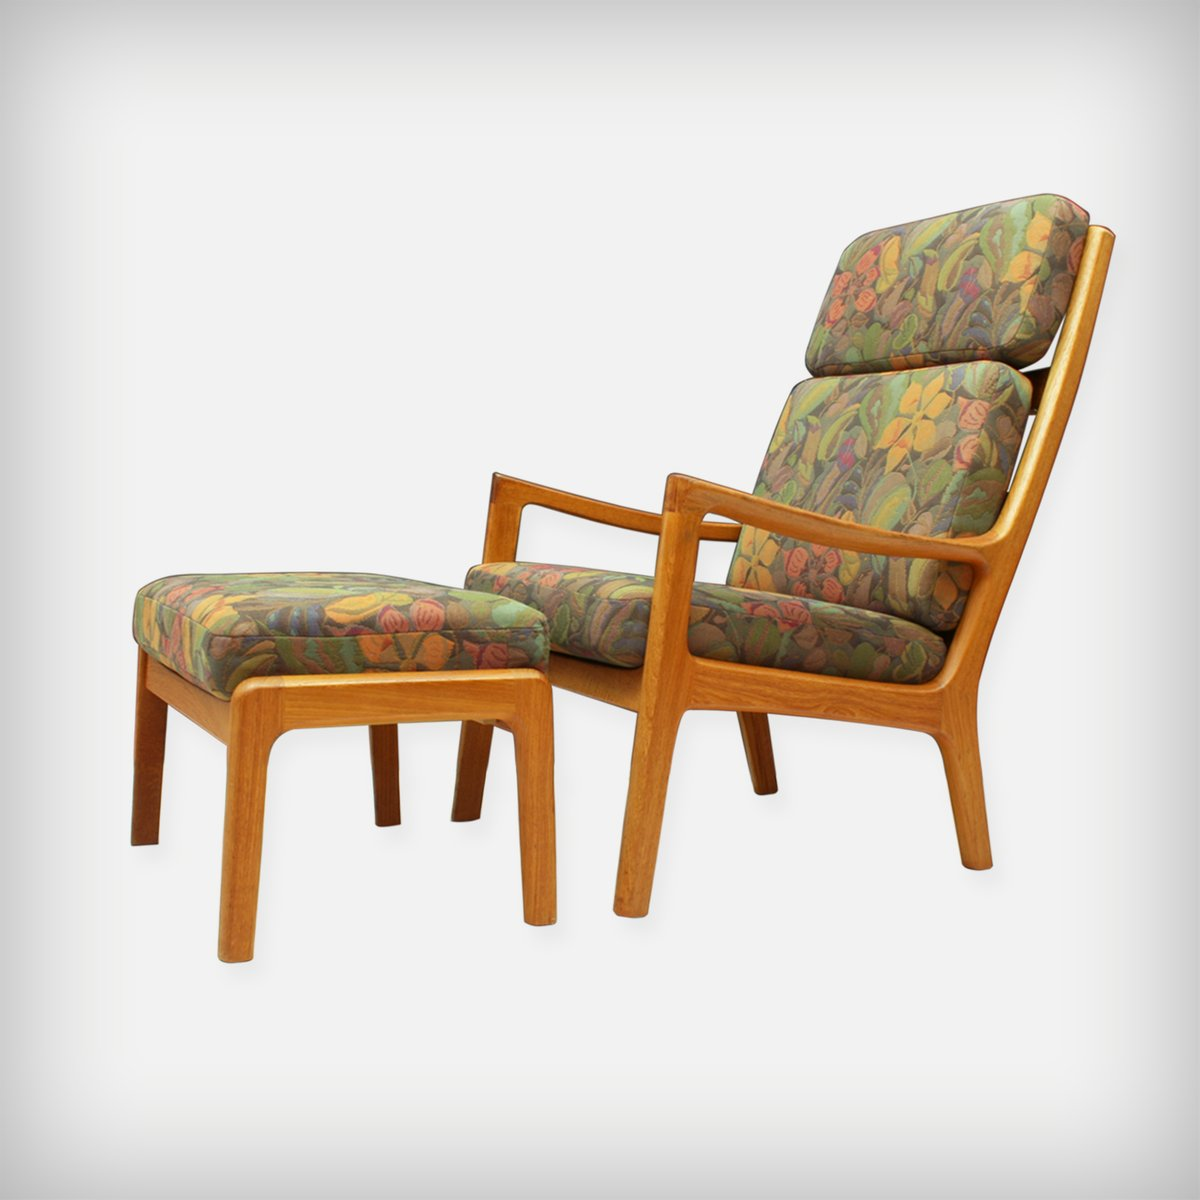 Magnificent Danish Teak Senator Lounge Chair With Ottoman By Ole Wanscher For Poul Jeppesens Mobelfabrik A S 1970S Gmtry Best Dining Table And Chair Ideas Images Gmtryco